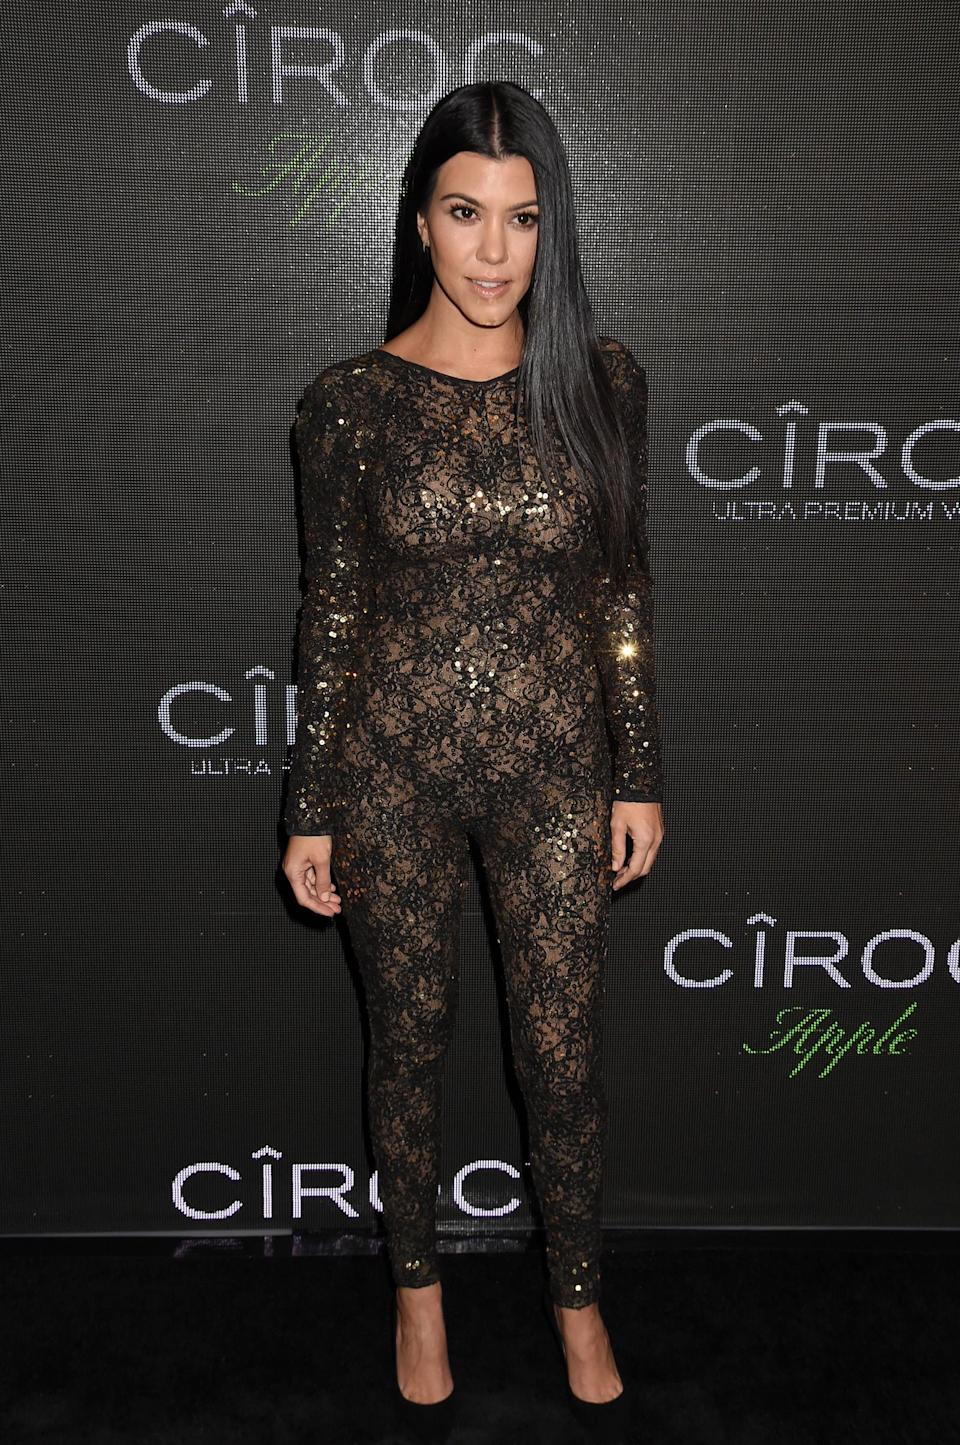 <p>The oldest Kardashian sister pulled off this risque look at a Ciroc party in November 2015. (Photo: Jeff Kravitz/FilmMagic) </p>